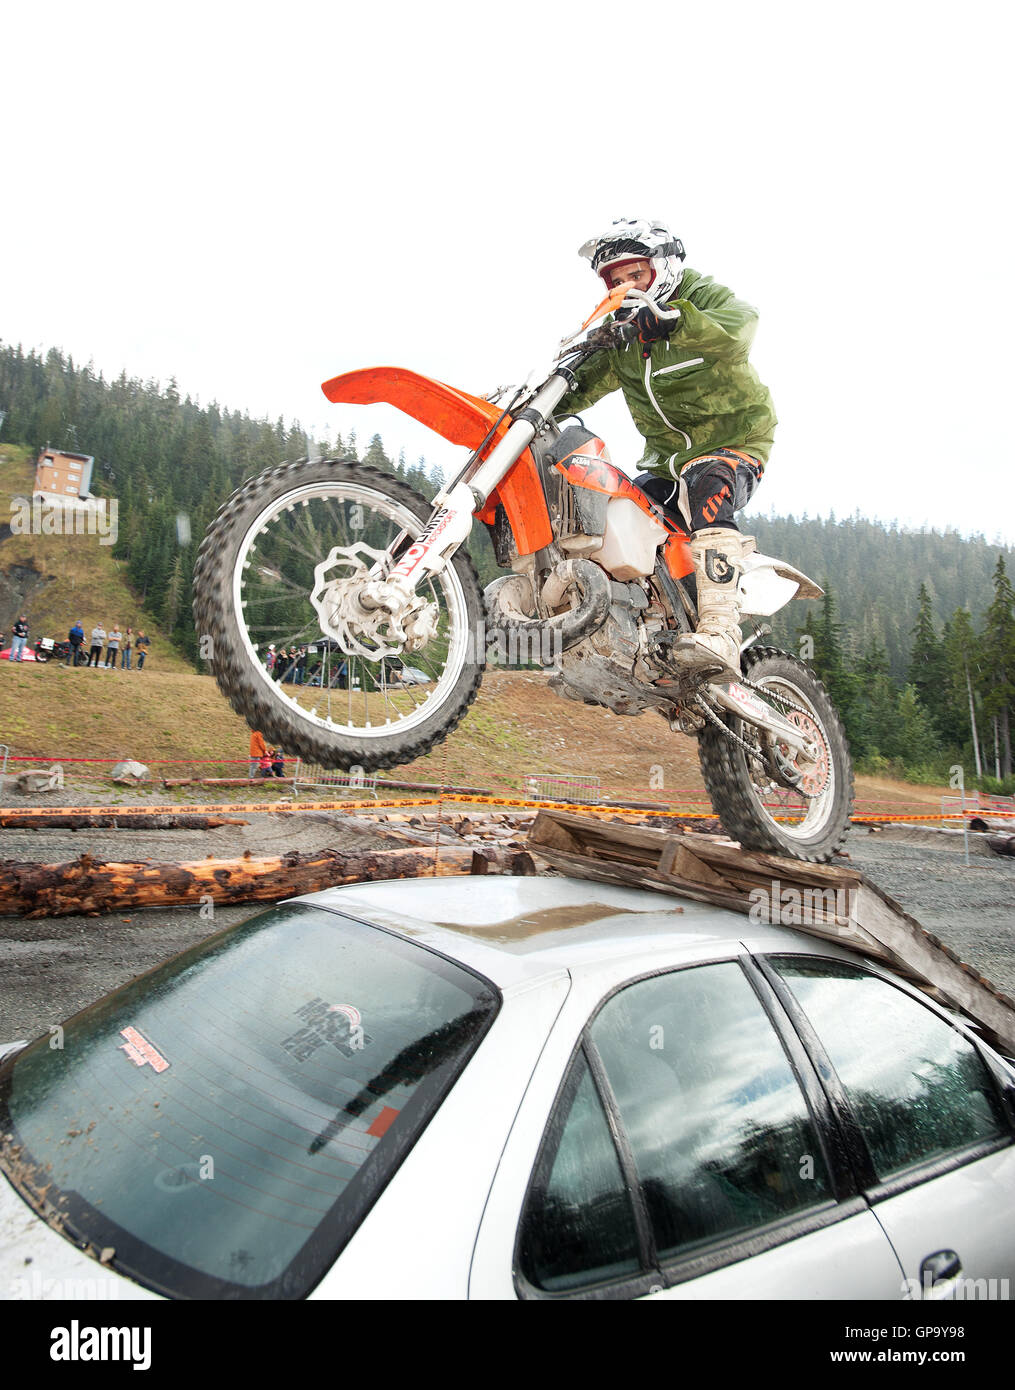 A dirt biker jumps his bike over a wrecked car at the Whistler Olympic Park.  Whistler BC, Canada - Stock Image